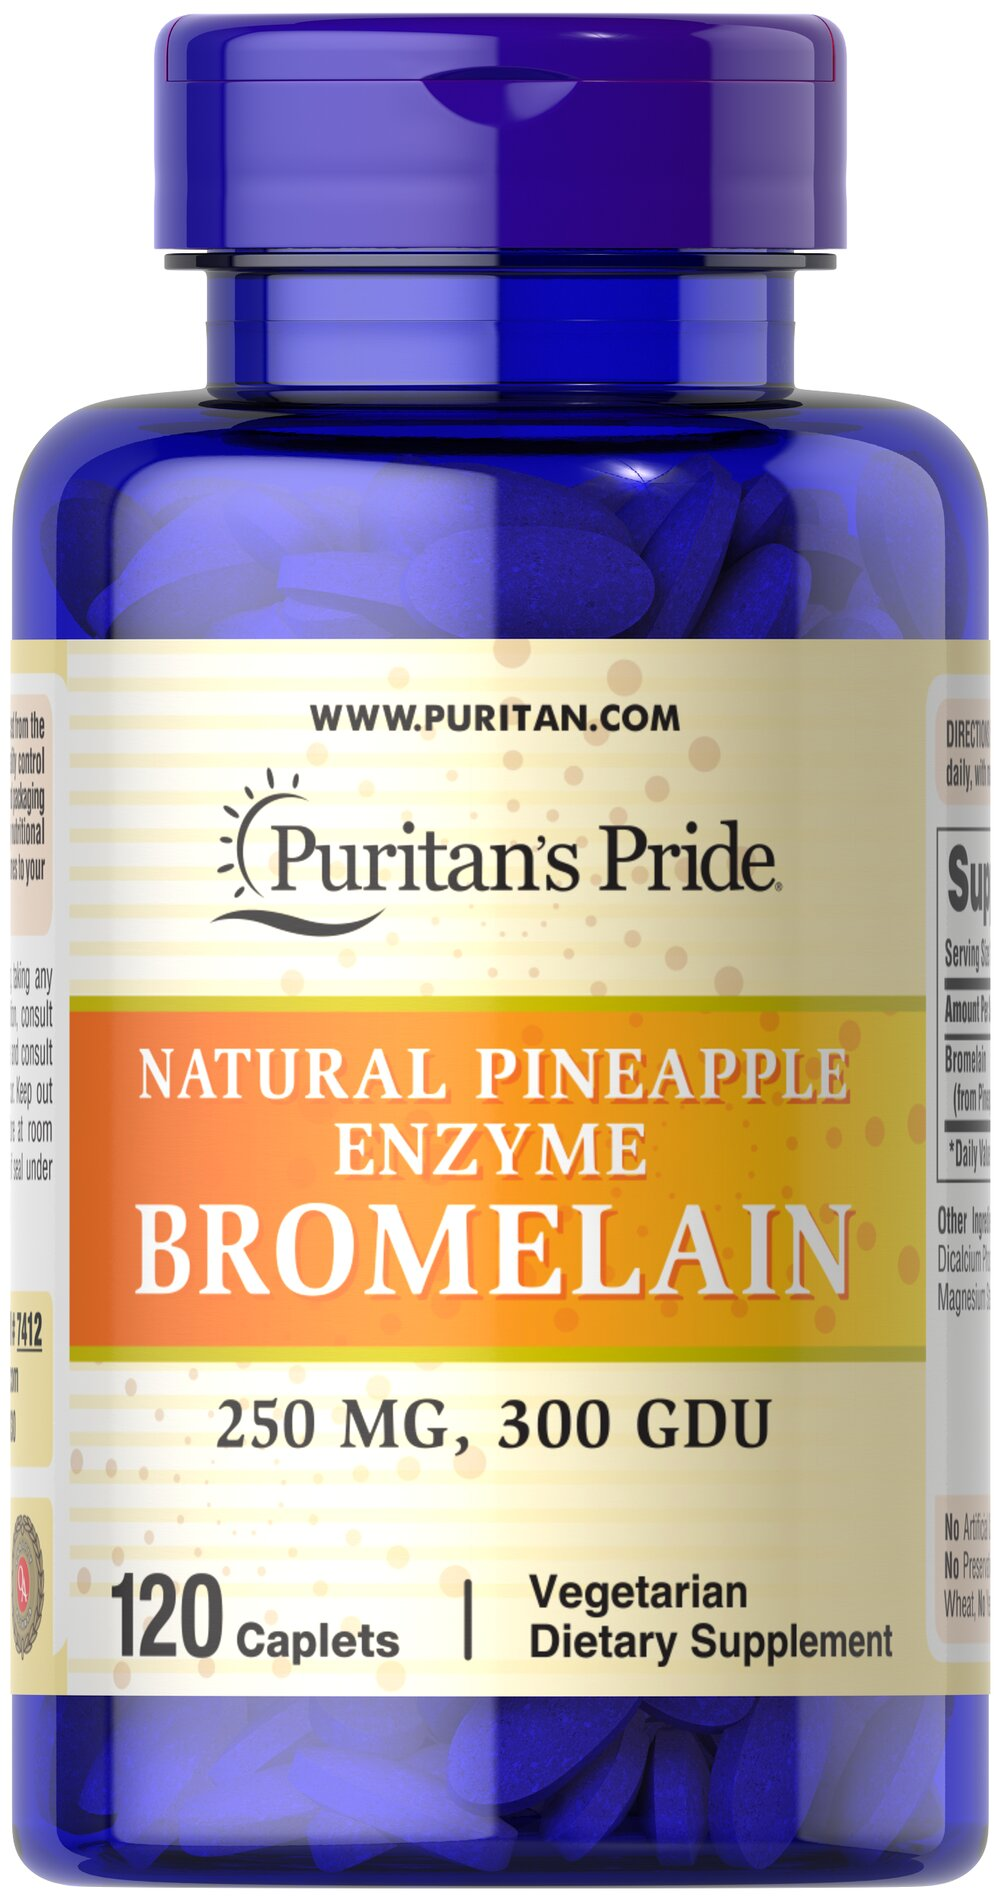 Bromelain 500 mg 300 GDU/gram <p>Derived from the stems of pineapple, Bromelain is a natural digestive enzyme.** </p><p>As a natural enzyme, Bromelain helps digest protein in the gastrointestinal tract.** </p><p>In general, enzymes break down the nutritional components of proteins, fats and carbohydrates, making these nutrients available for the body's energy needs, cell growth and other vital functions.**</p> 120 Tablets 500 mg $22.59